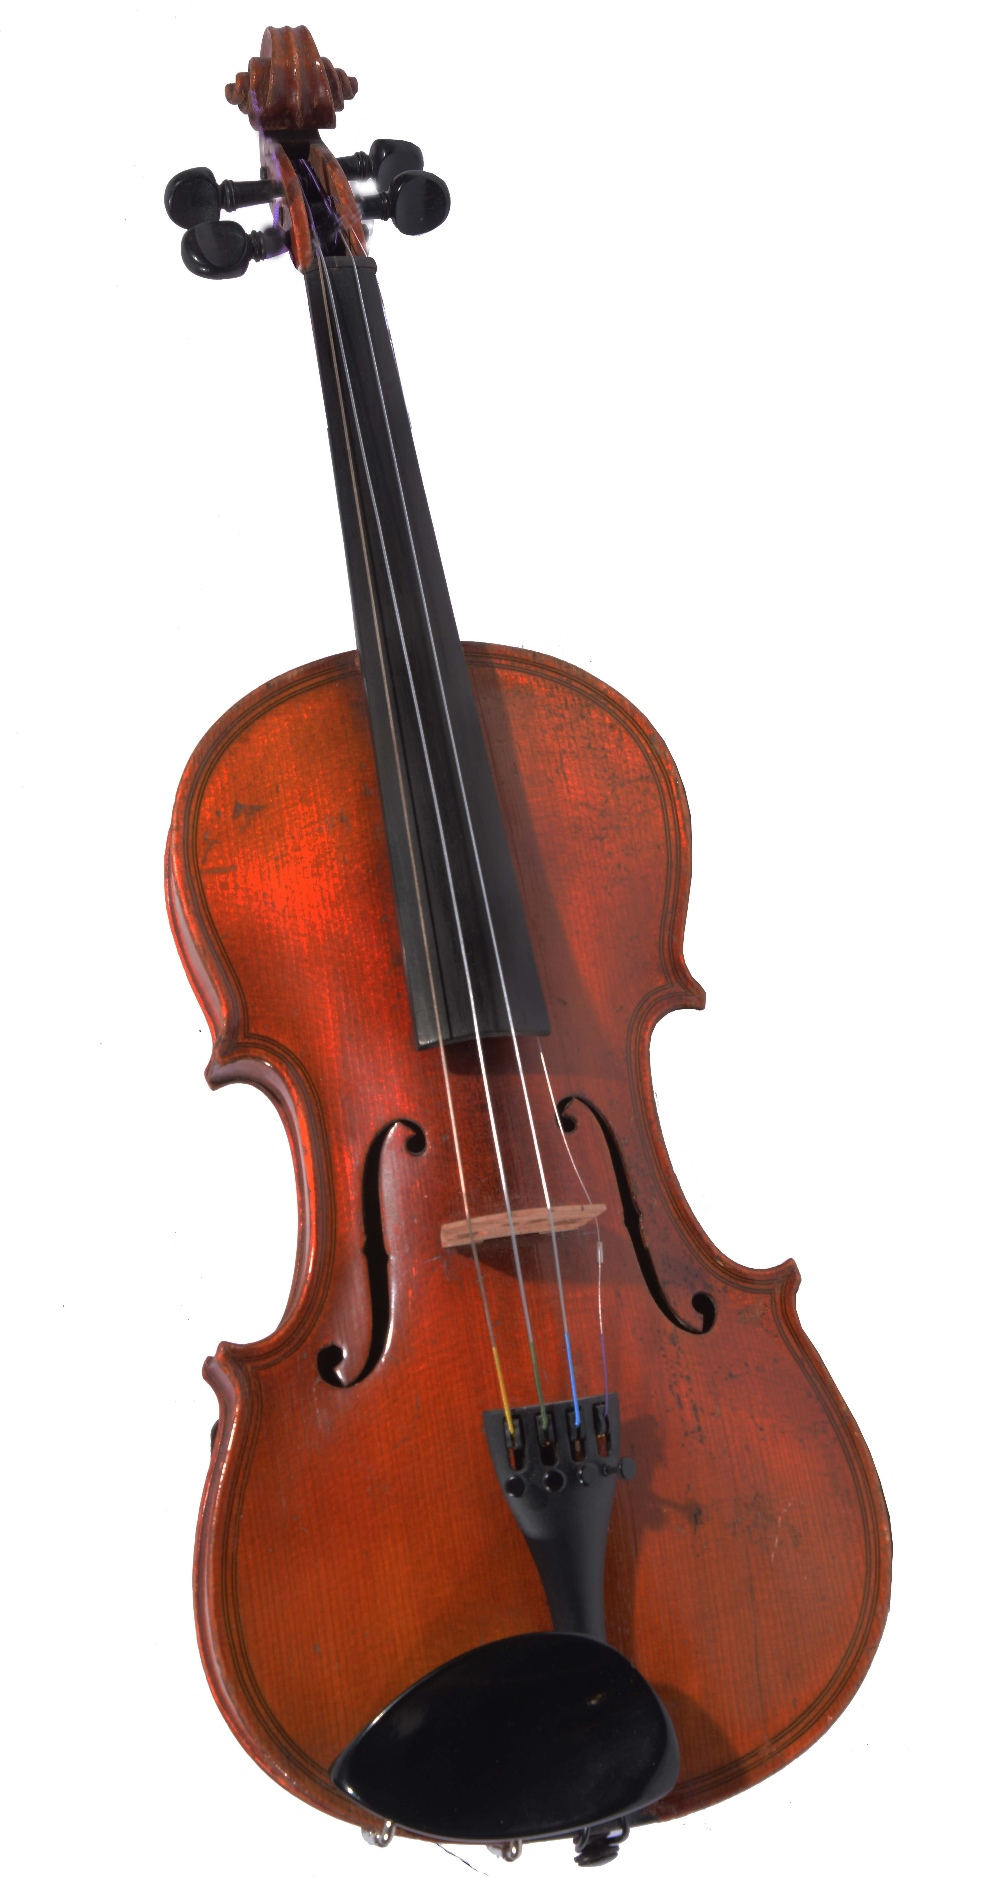 Lot 151 - A GERMAN COPY OF A MAGGINI VIOLIN by E.R. Schmidt with two piece back, stamped 'Maggini' and of